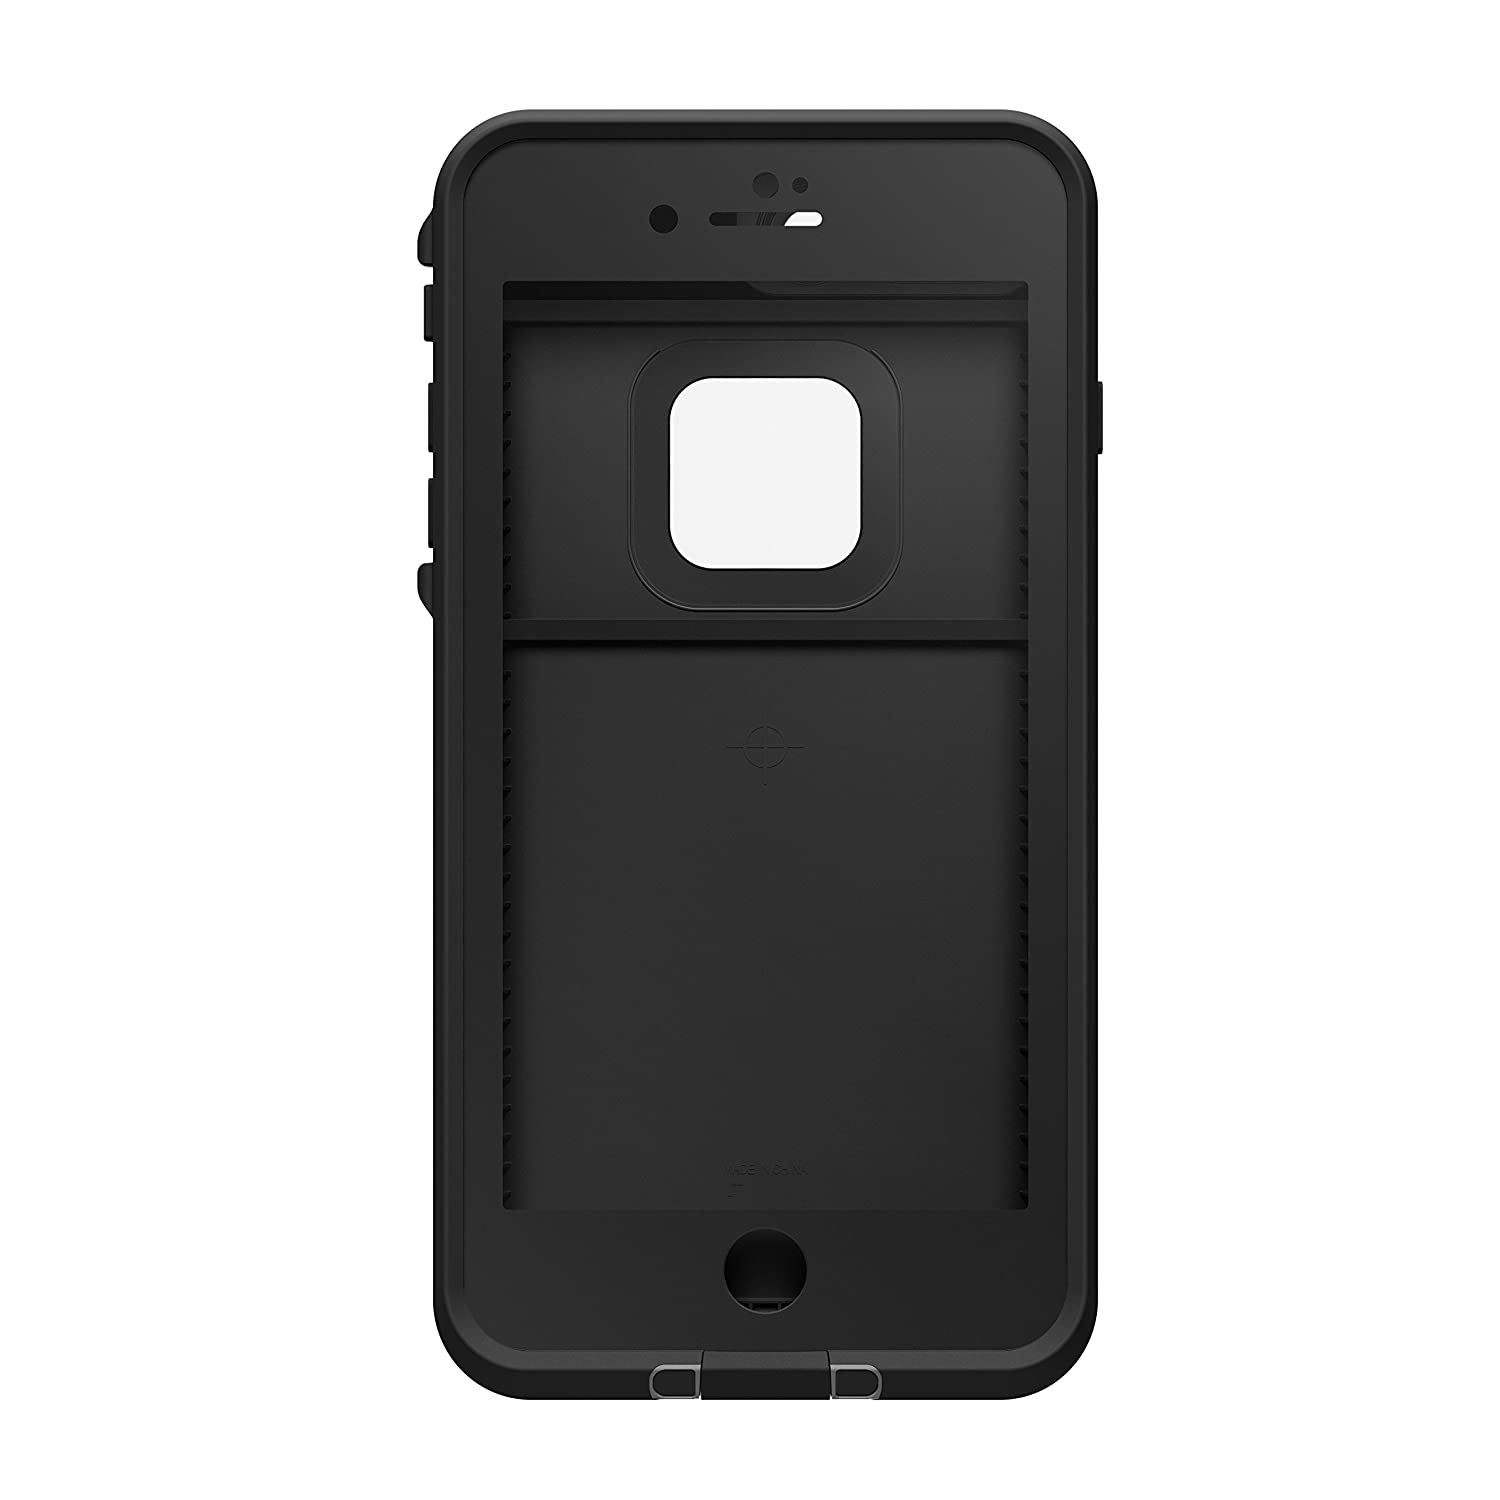 Lifeproof FRĒ SERIES Waterproof Case for iPhone 7 Plus (ONLY) - Retail Packaging - ASPHALT (BLACK/DARK GREY)